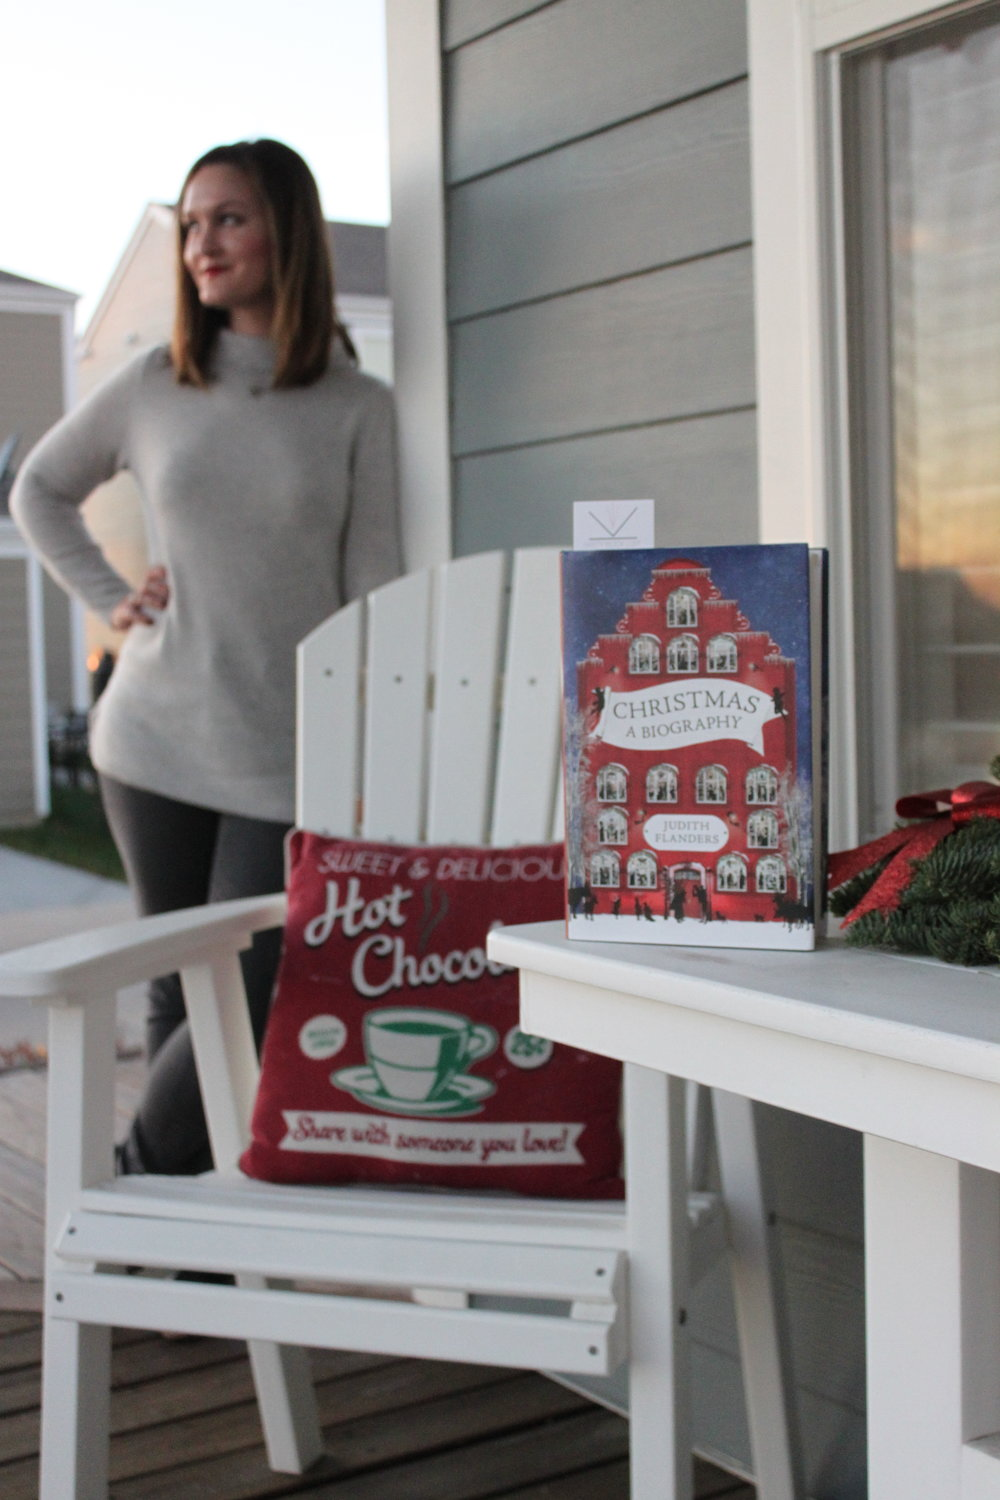 Reading Christmas: A Biography by Judith Flanders in New Town, St. Charles, Missouri